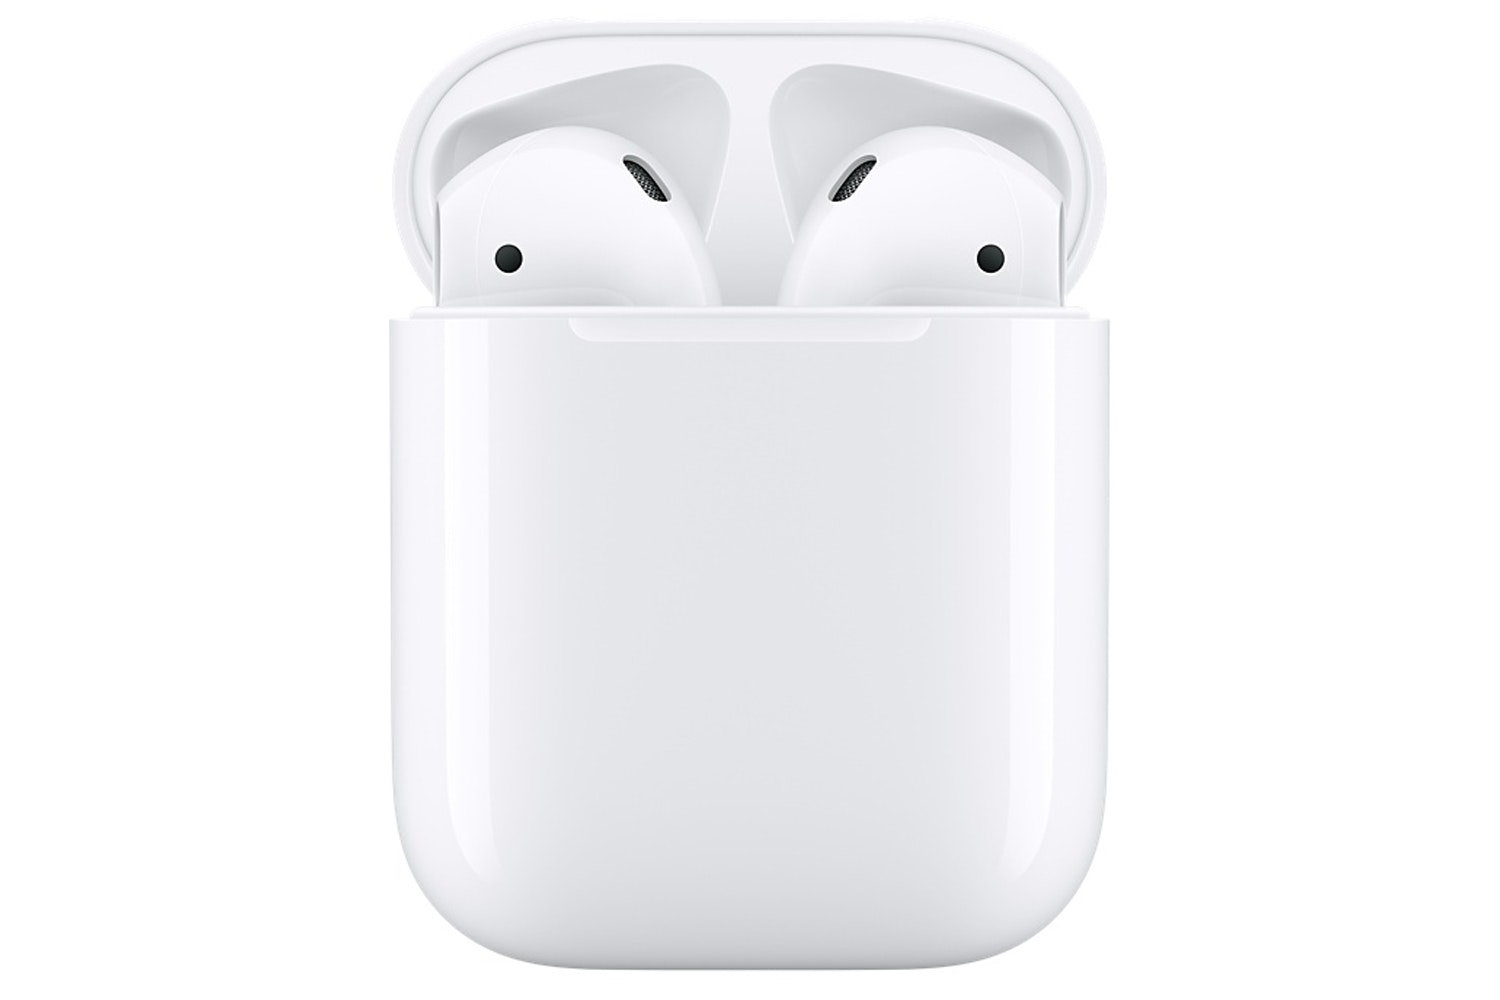 Apple Airpods | White